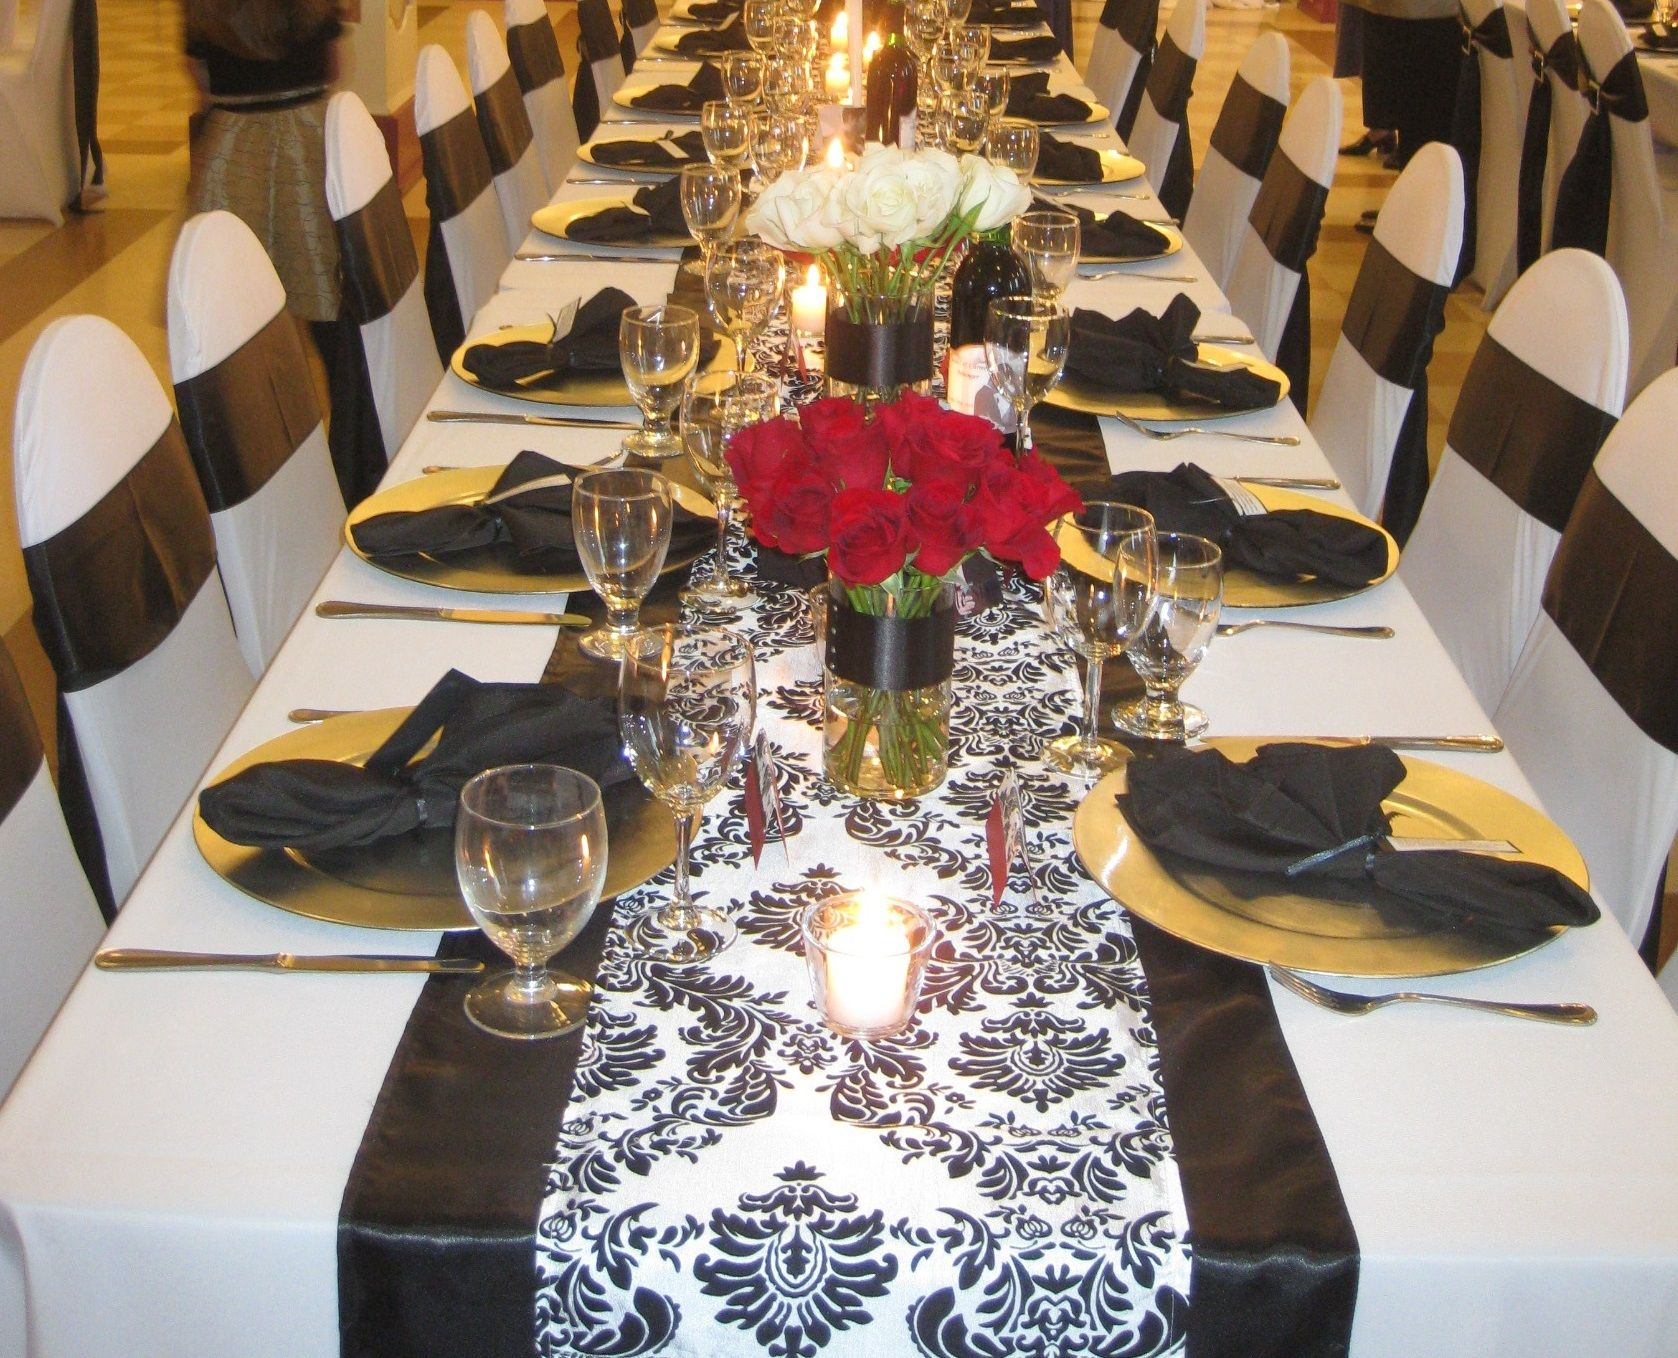 B&W Damask Runner With Black Border Red Rose Centerpieces Silver